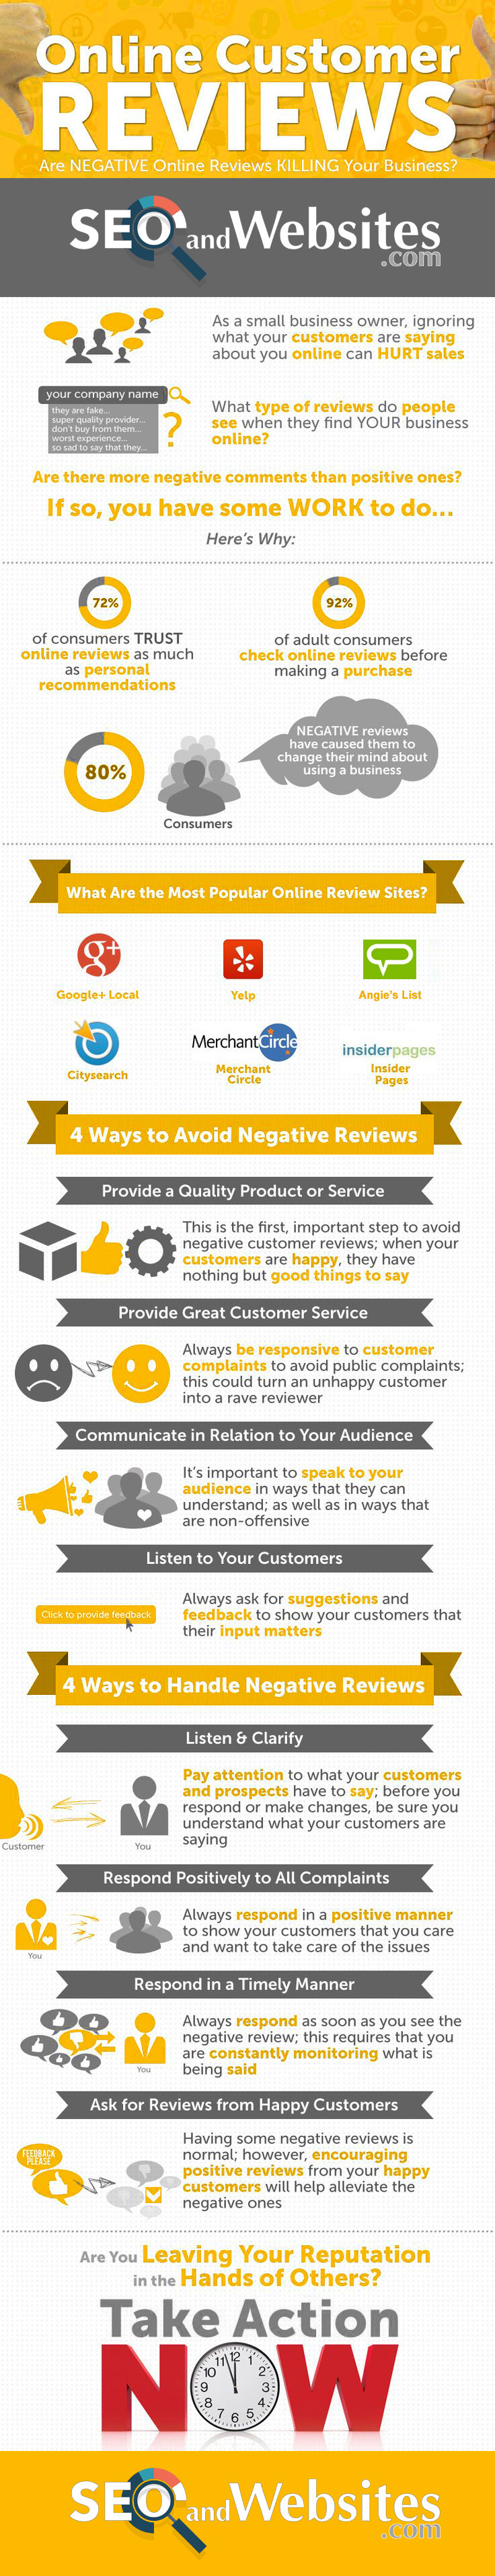 Infographic - Are Negative Online Reviews KILLING Your Business? - SEO and Websites